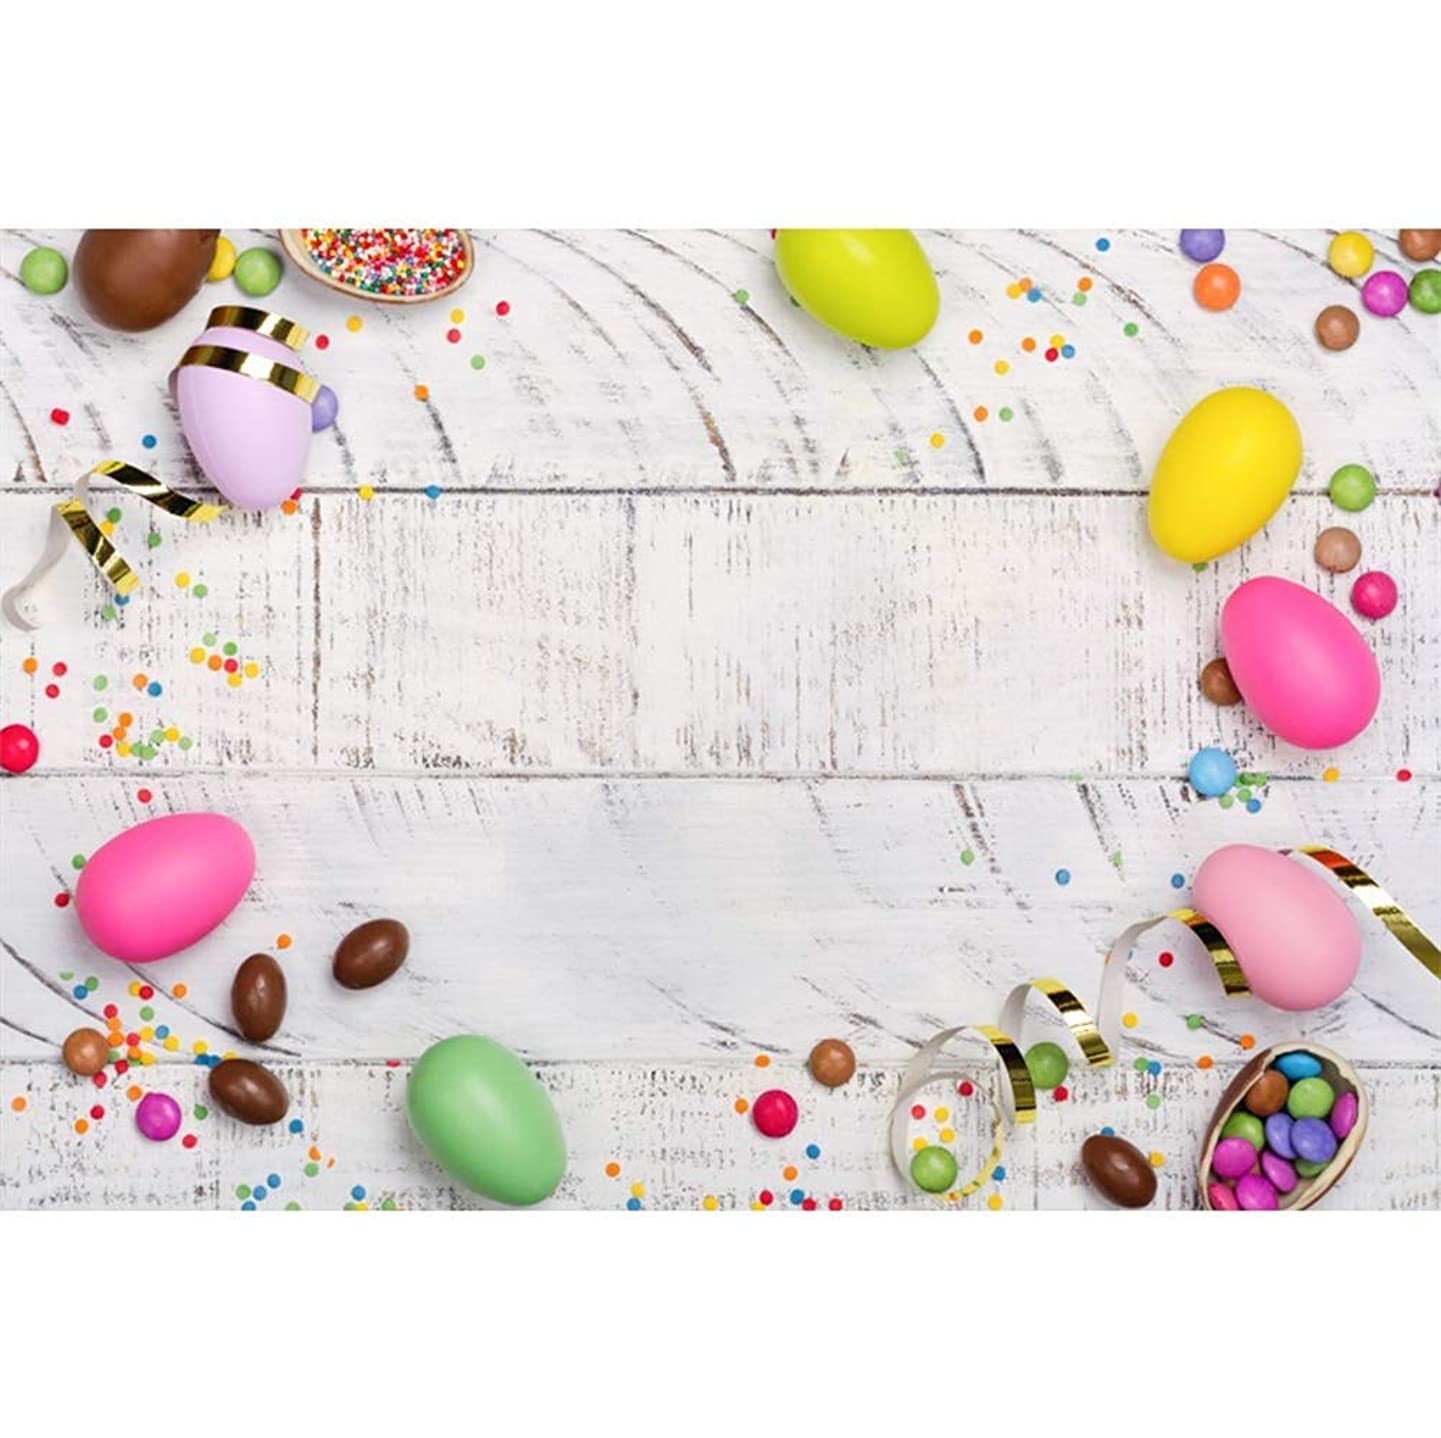 SZZWY Vinyl Easter Day Photography Backdrop 8x6.5ft Colorful Easter Eggs Candies Golden Streamer Flat-Lay Whitish Wood Plank Background Children Adults Festival Portraits Shoot Greeting Card